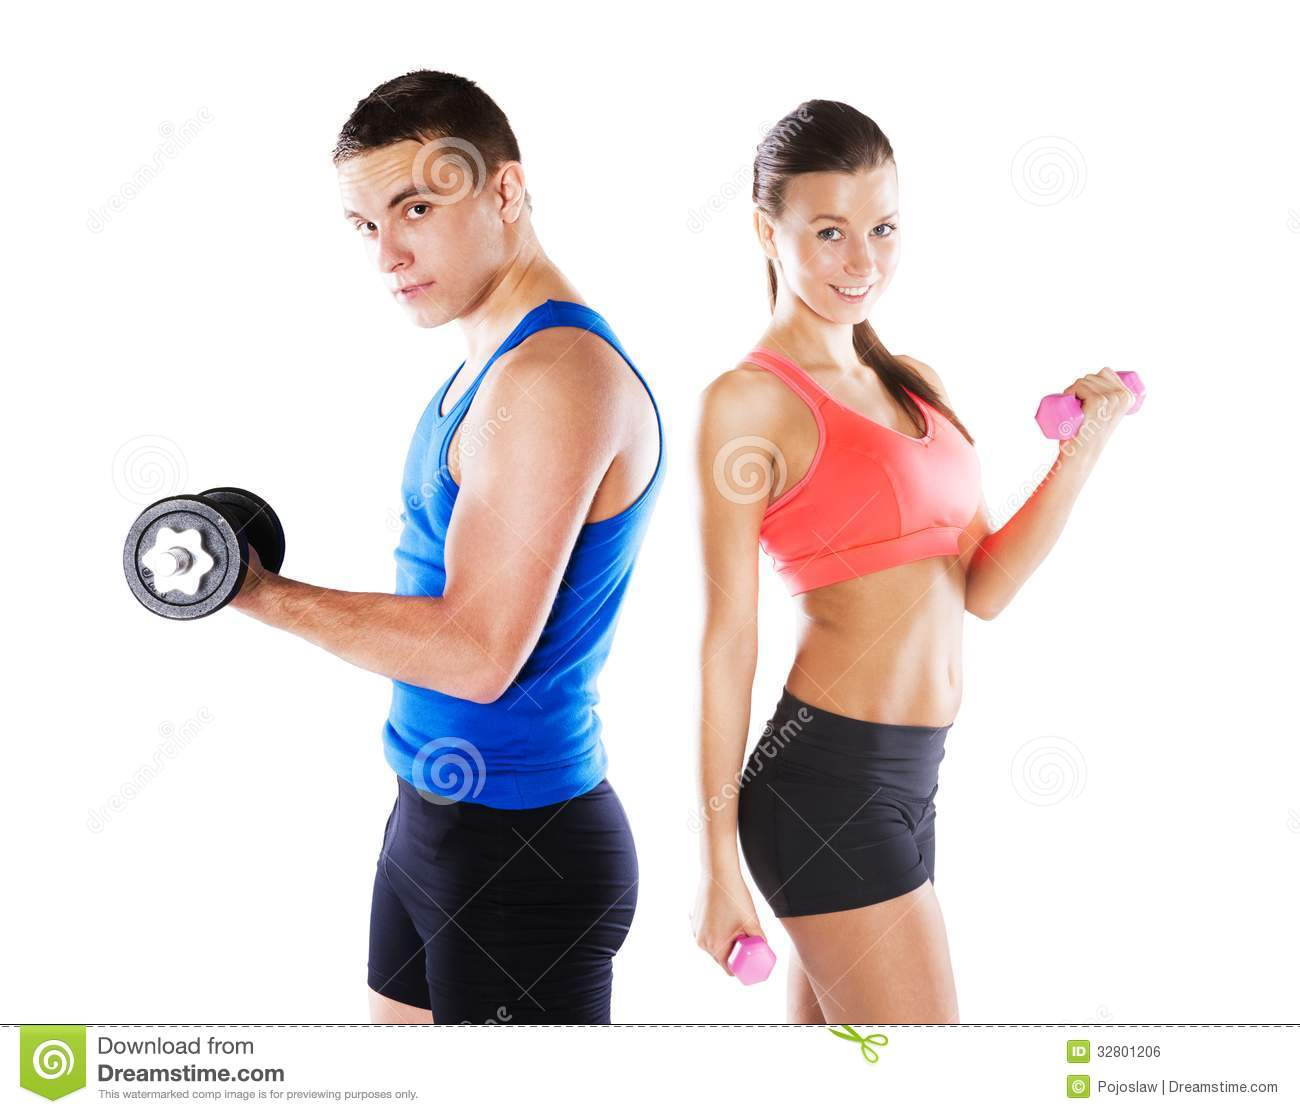 Workout Photography: Athletic Man And Woman Stock Photo. Image Of Muscle, Adult